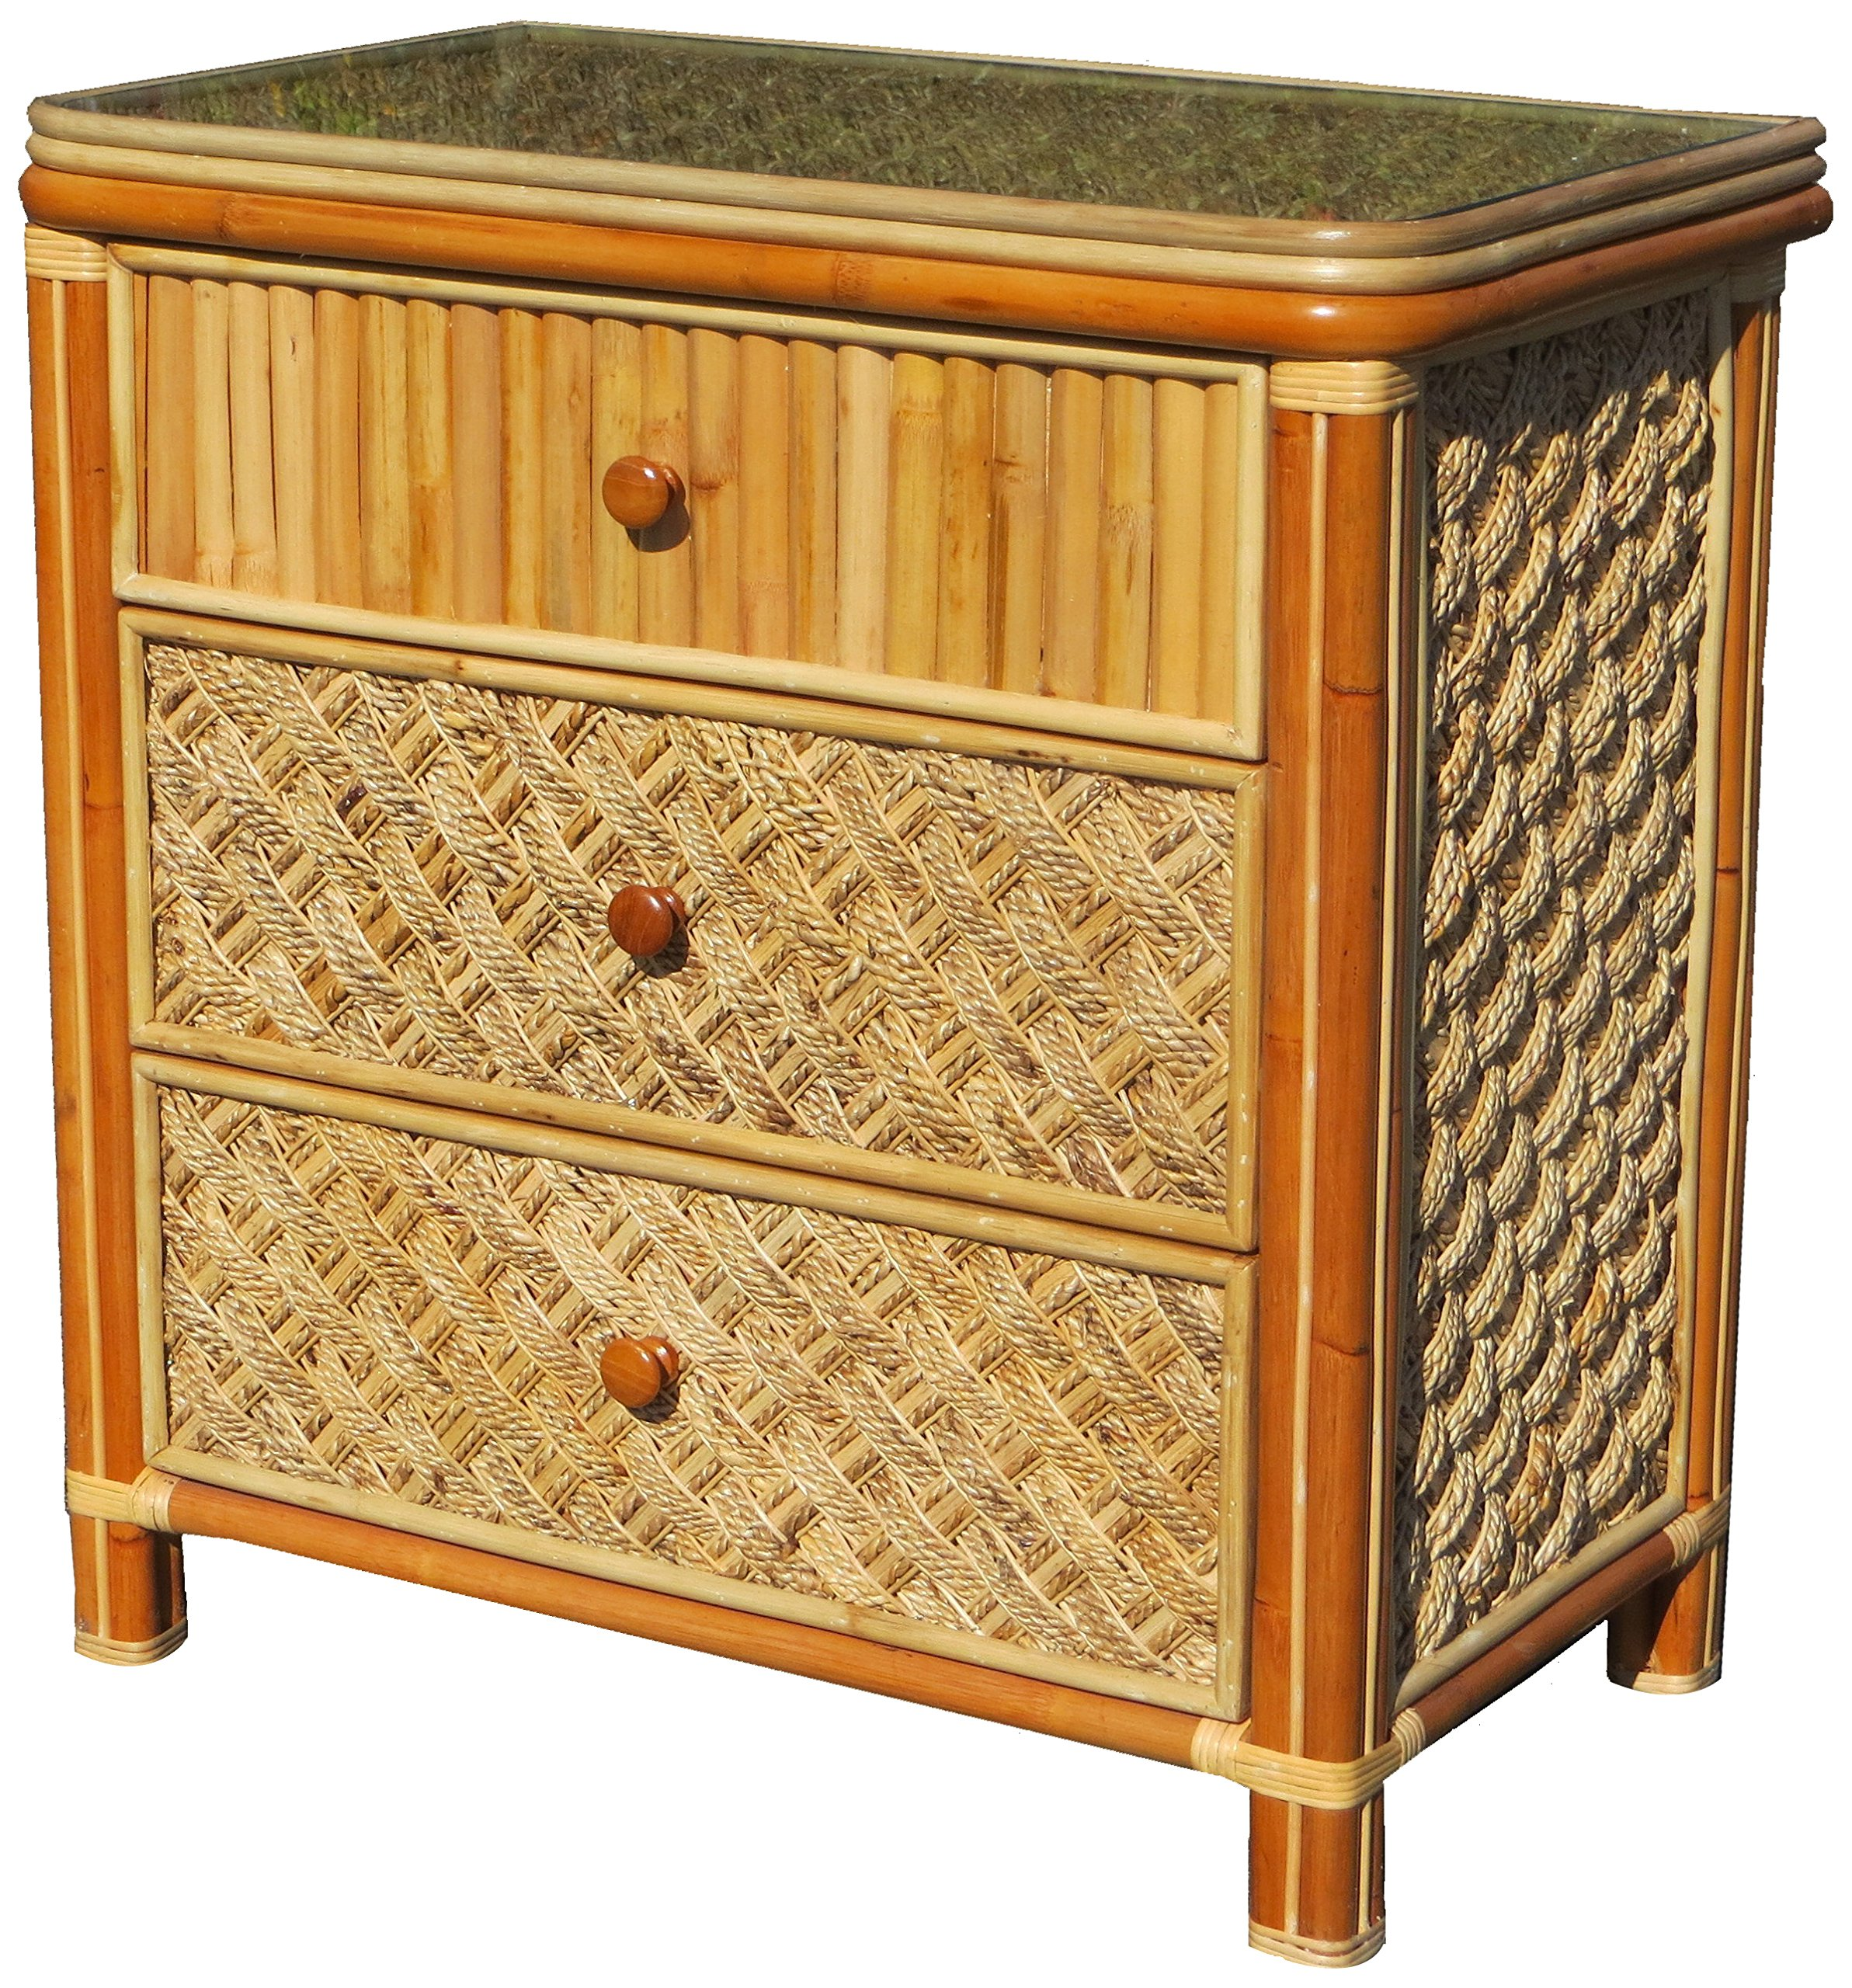 Spice Islands Mandalay 3 Drawer Dresser, Natural - Most of their designs incorporate natural wicker Wicker designs to enhance your space Natural in color - dressers-bedroom-furniture, bedroom-furniture, bedroom - A1PHLkAEatL -